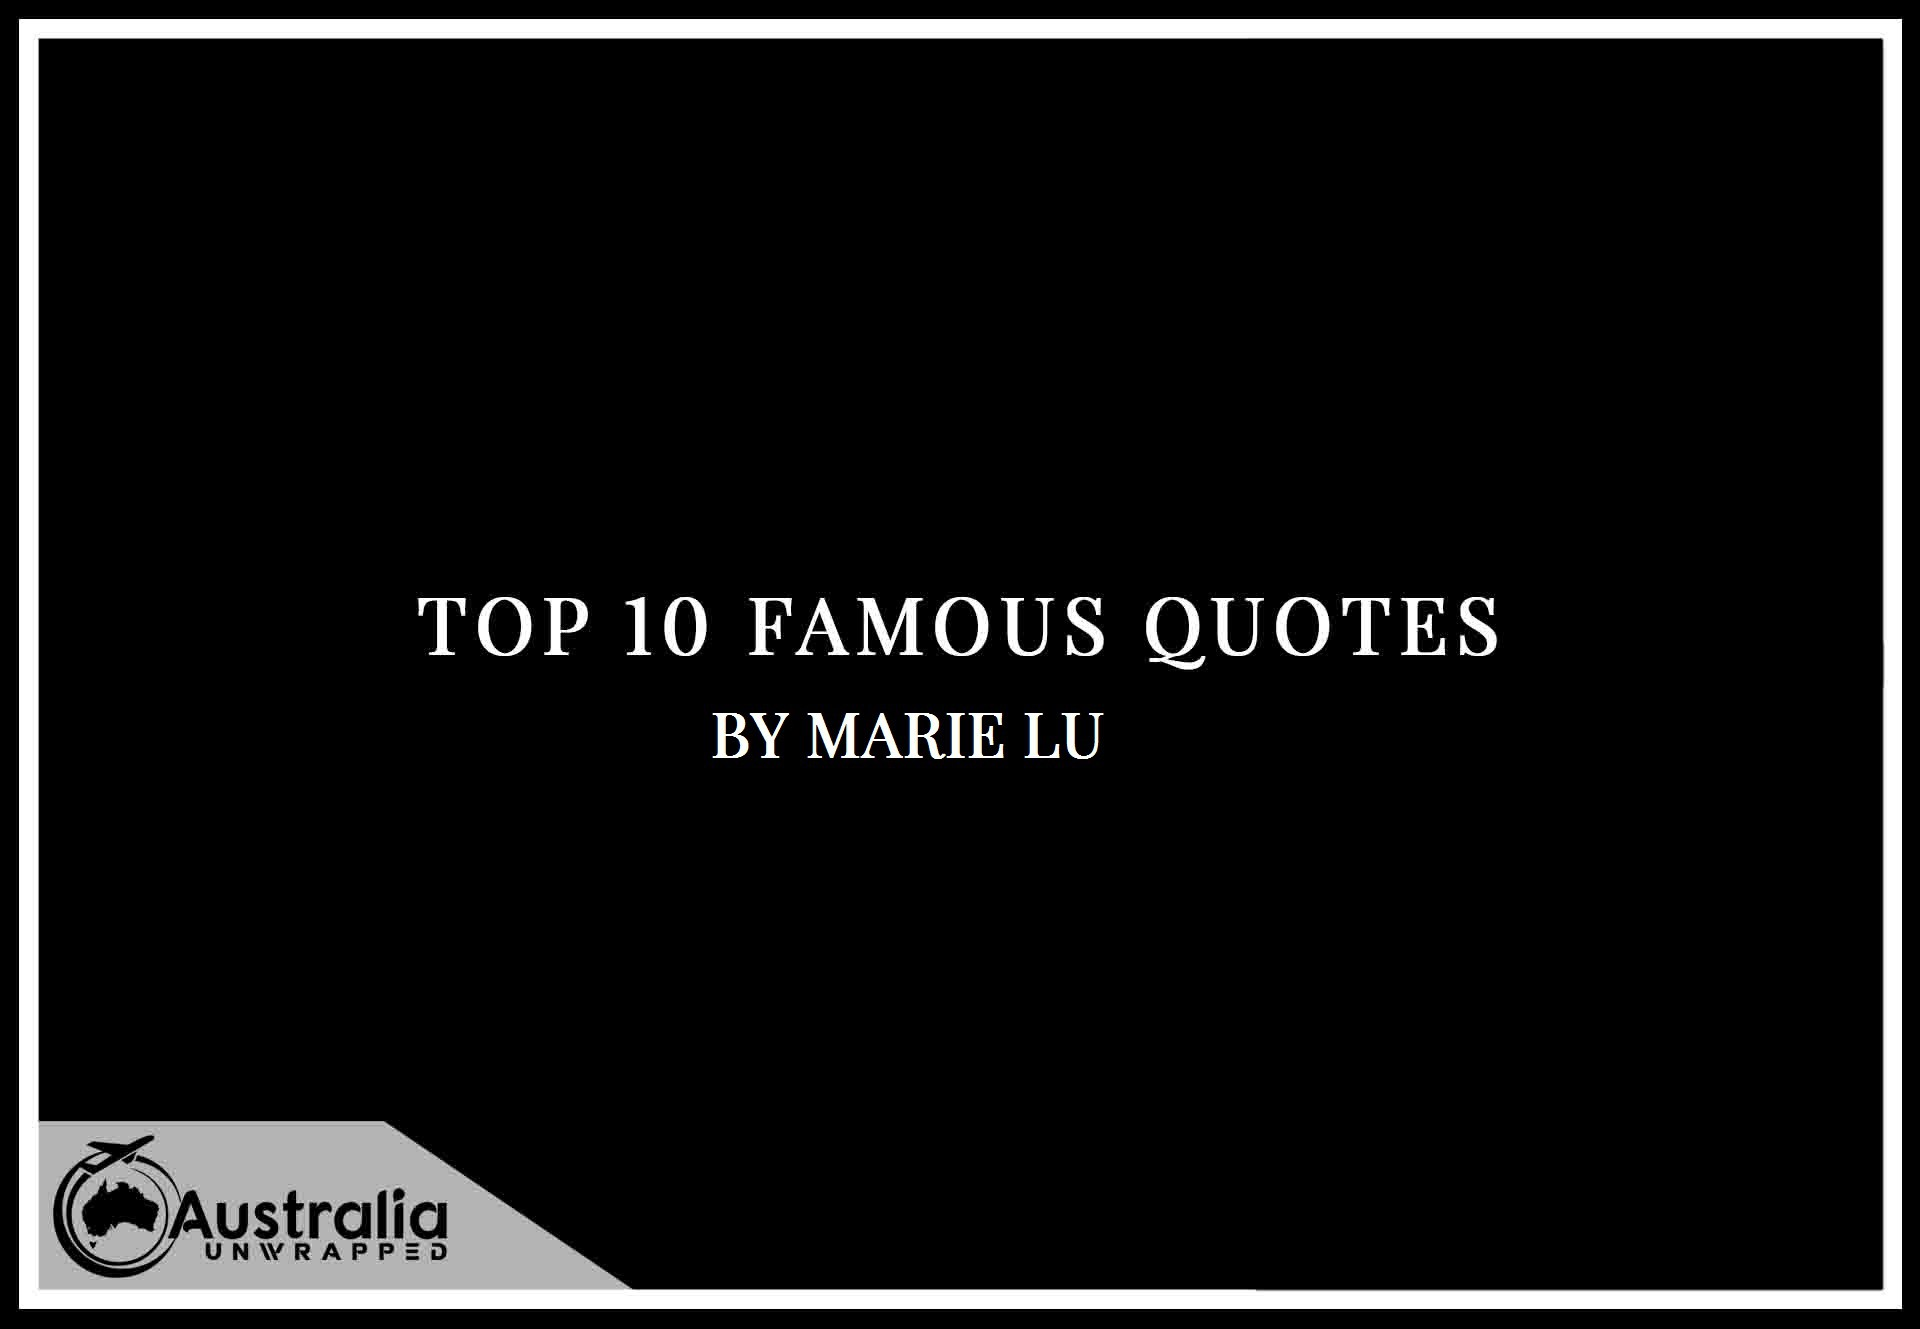 Marie Lu's Top 10 Popular and Famous Quotes